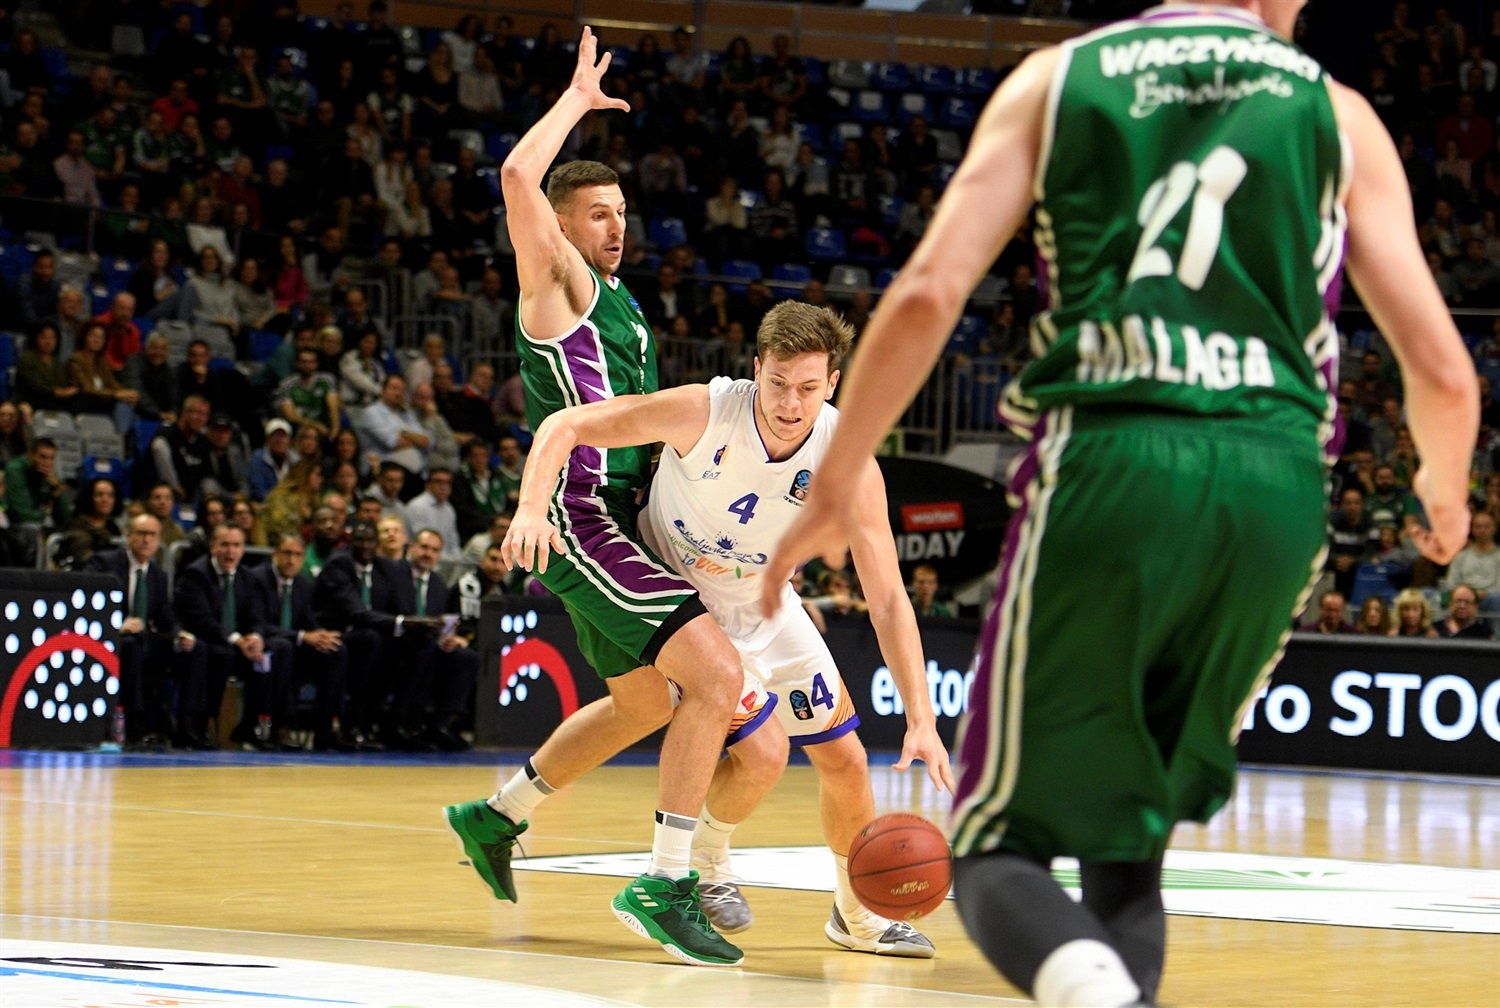 Strahinja Micovic - Mornar Bar (photo Unicaja) - EC18